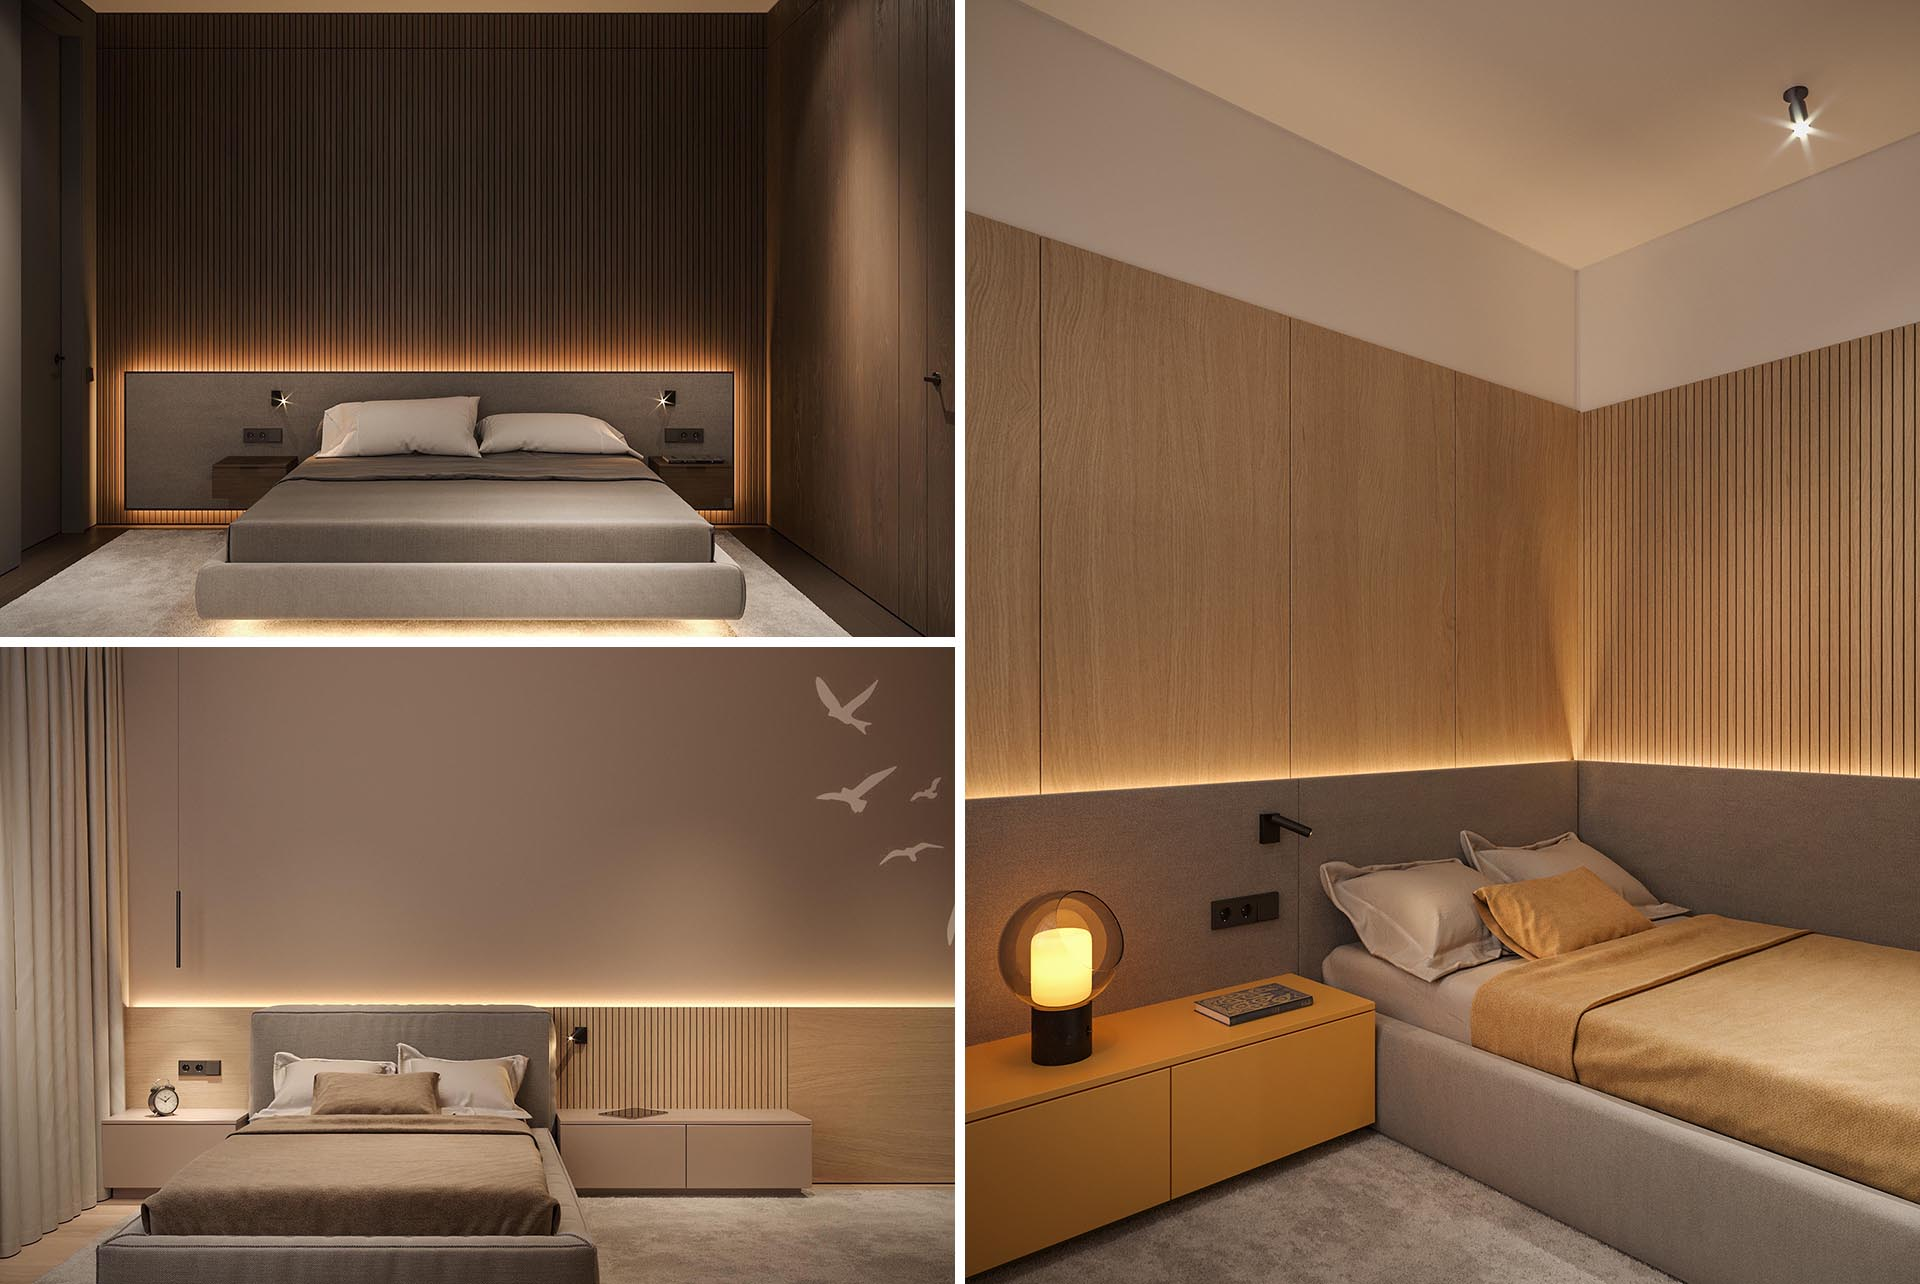 Modern bedrooms with a backlit headboard and partial wood accent wall.